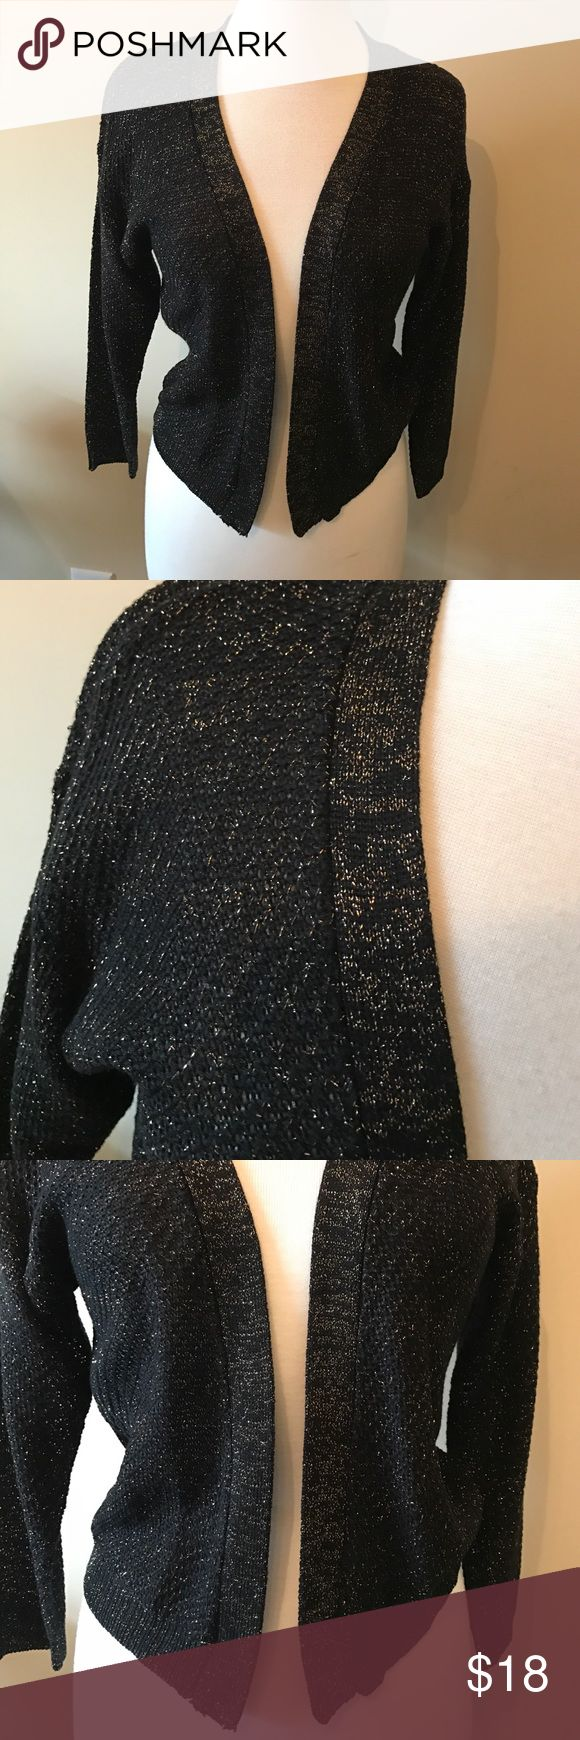 New - August Silk - black/gold cardigan New, never worn. Black and gold cardigan. Thin sweater material. Nothing ruined, no stains. No trades. august silk Sweaters Cardigans